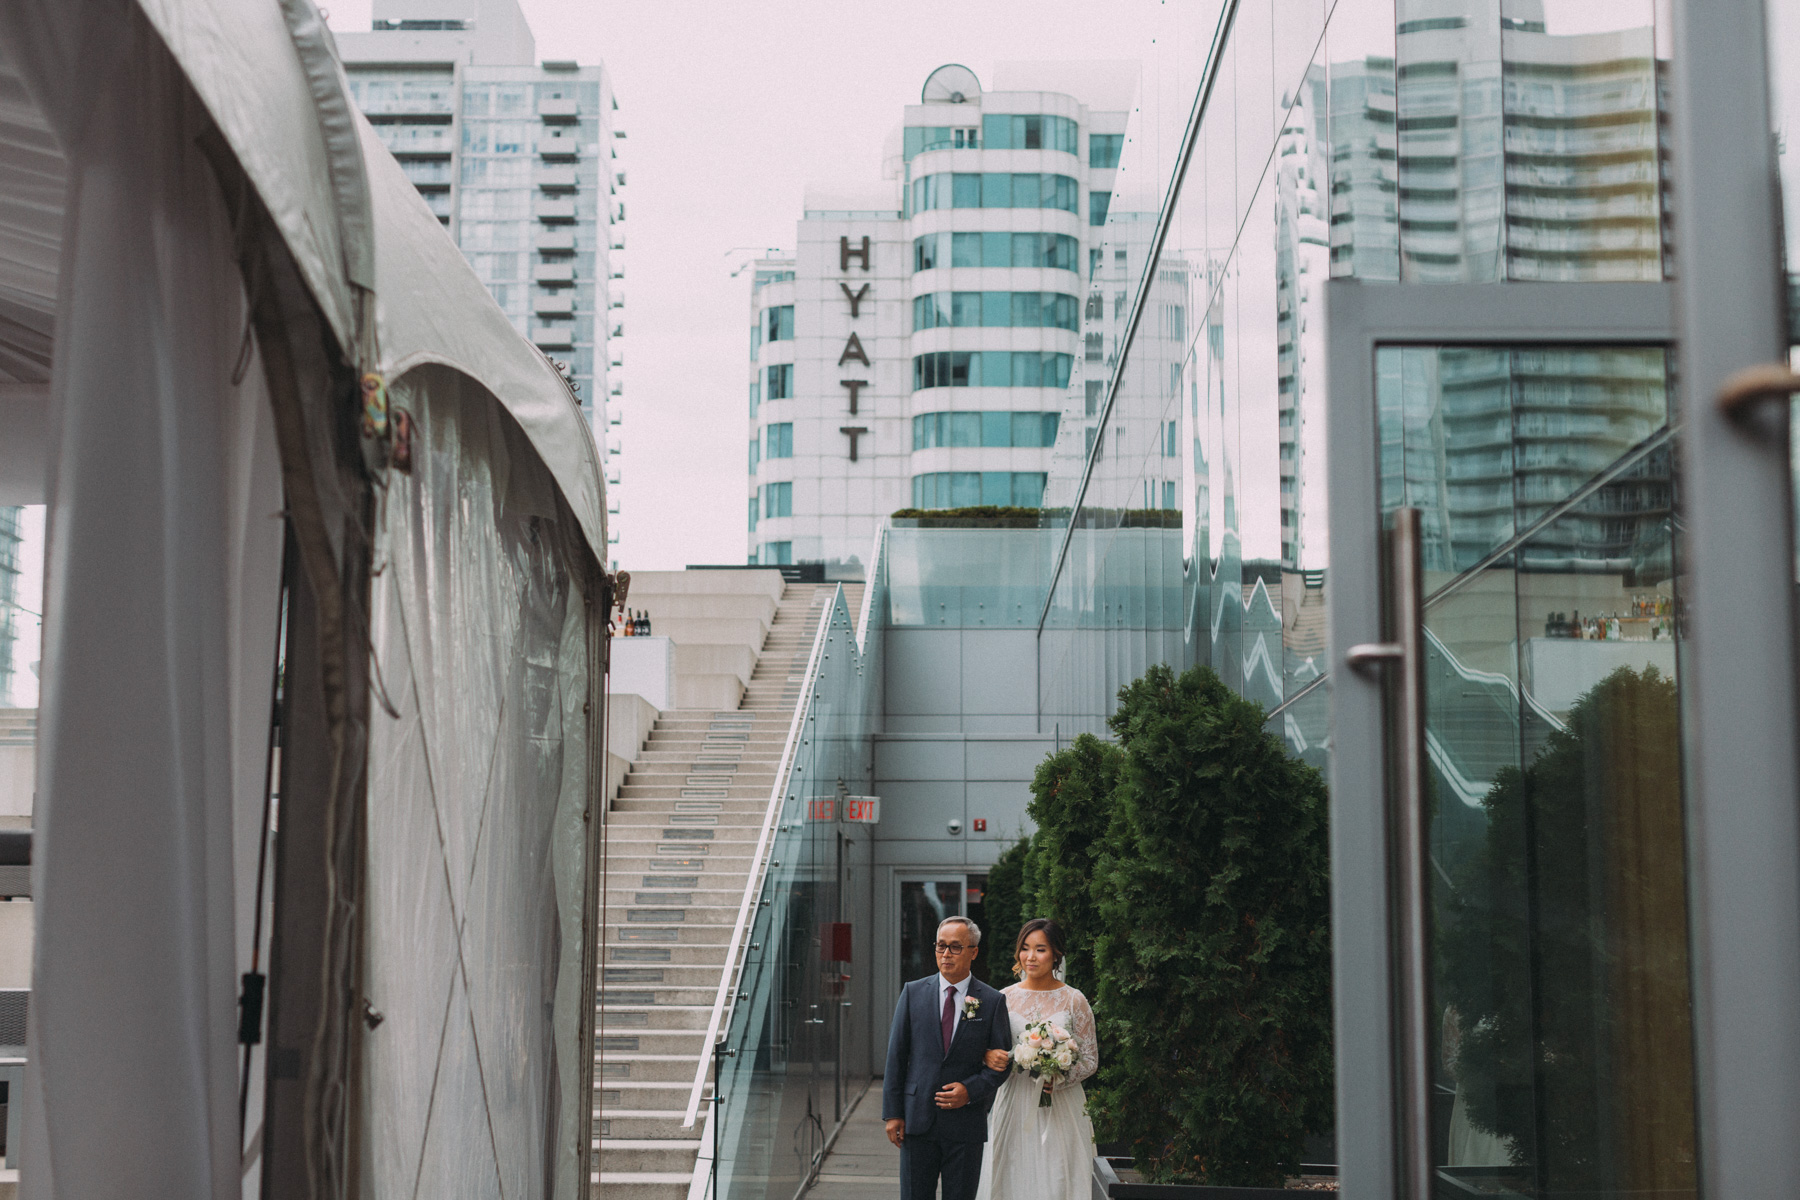 Malaparte-wedding-photography-Toronto-by-Sam-Wong-of-Artanis-Collective-Mary-Anne-Bourne_037.jpg